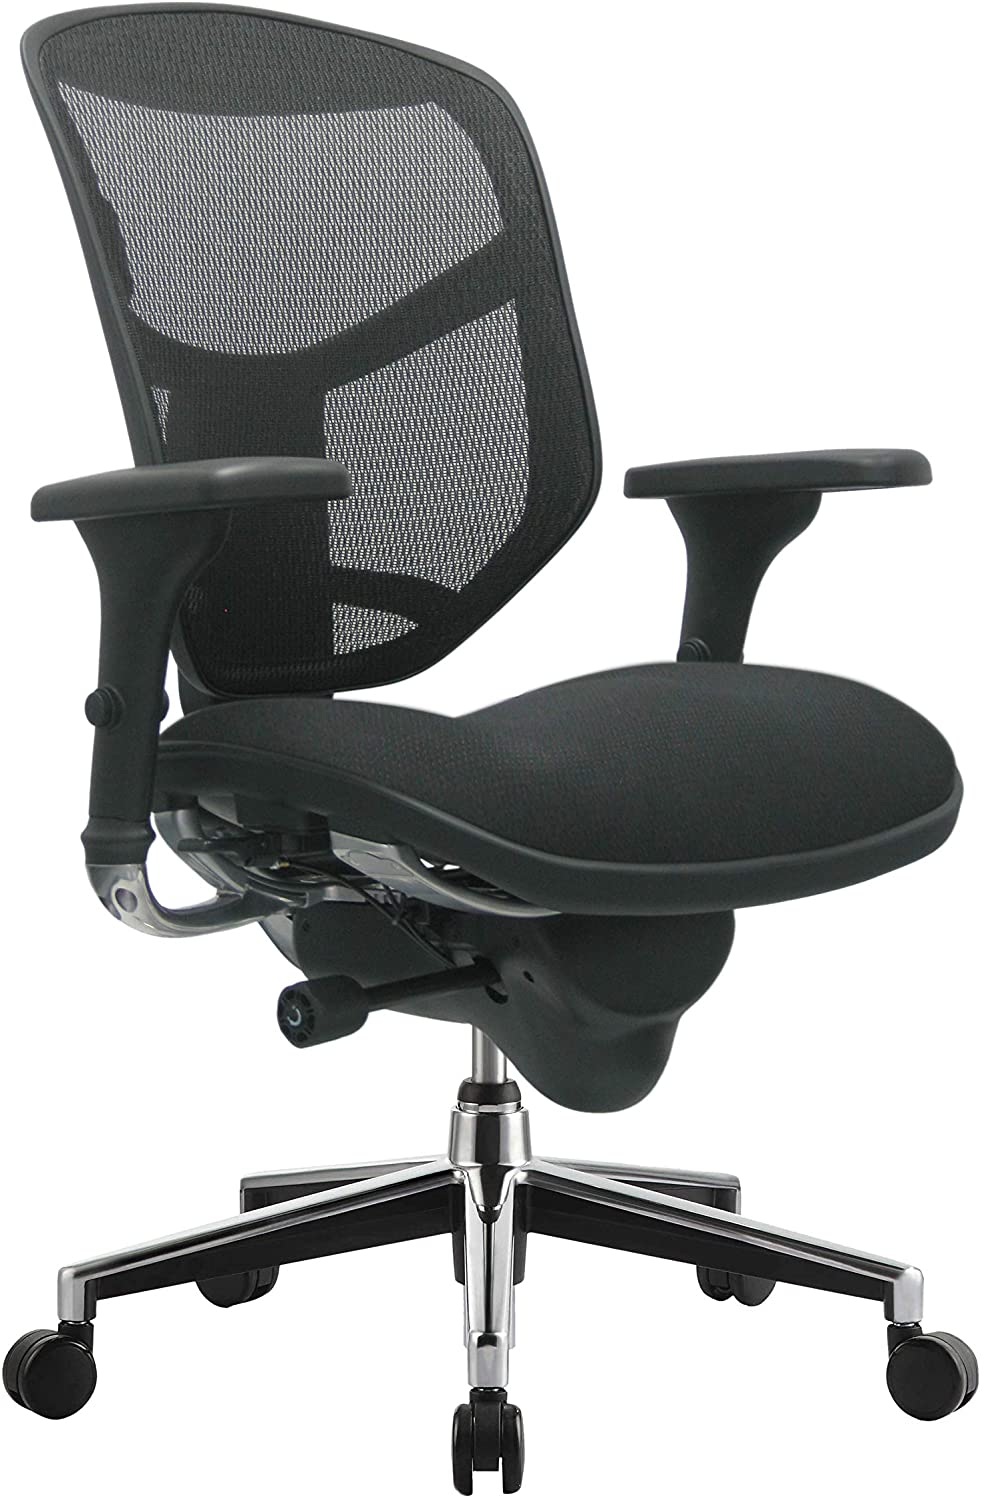 LOTUS EXECUTIVE MESH BACK CHAIR - FREE BOXED SHIPPING SYD METRO